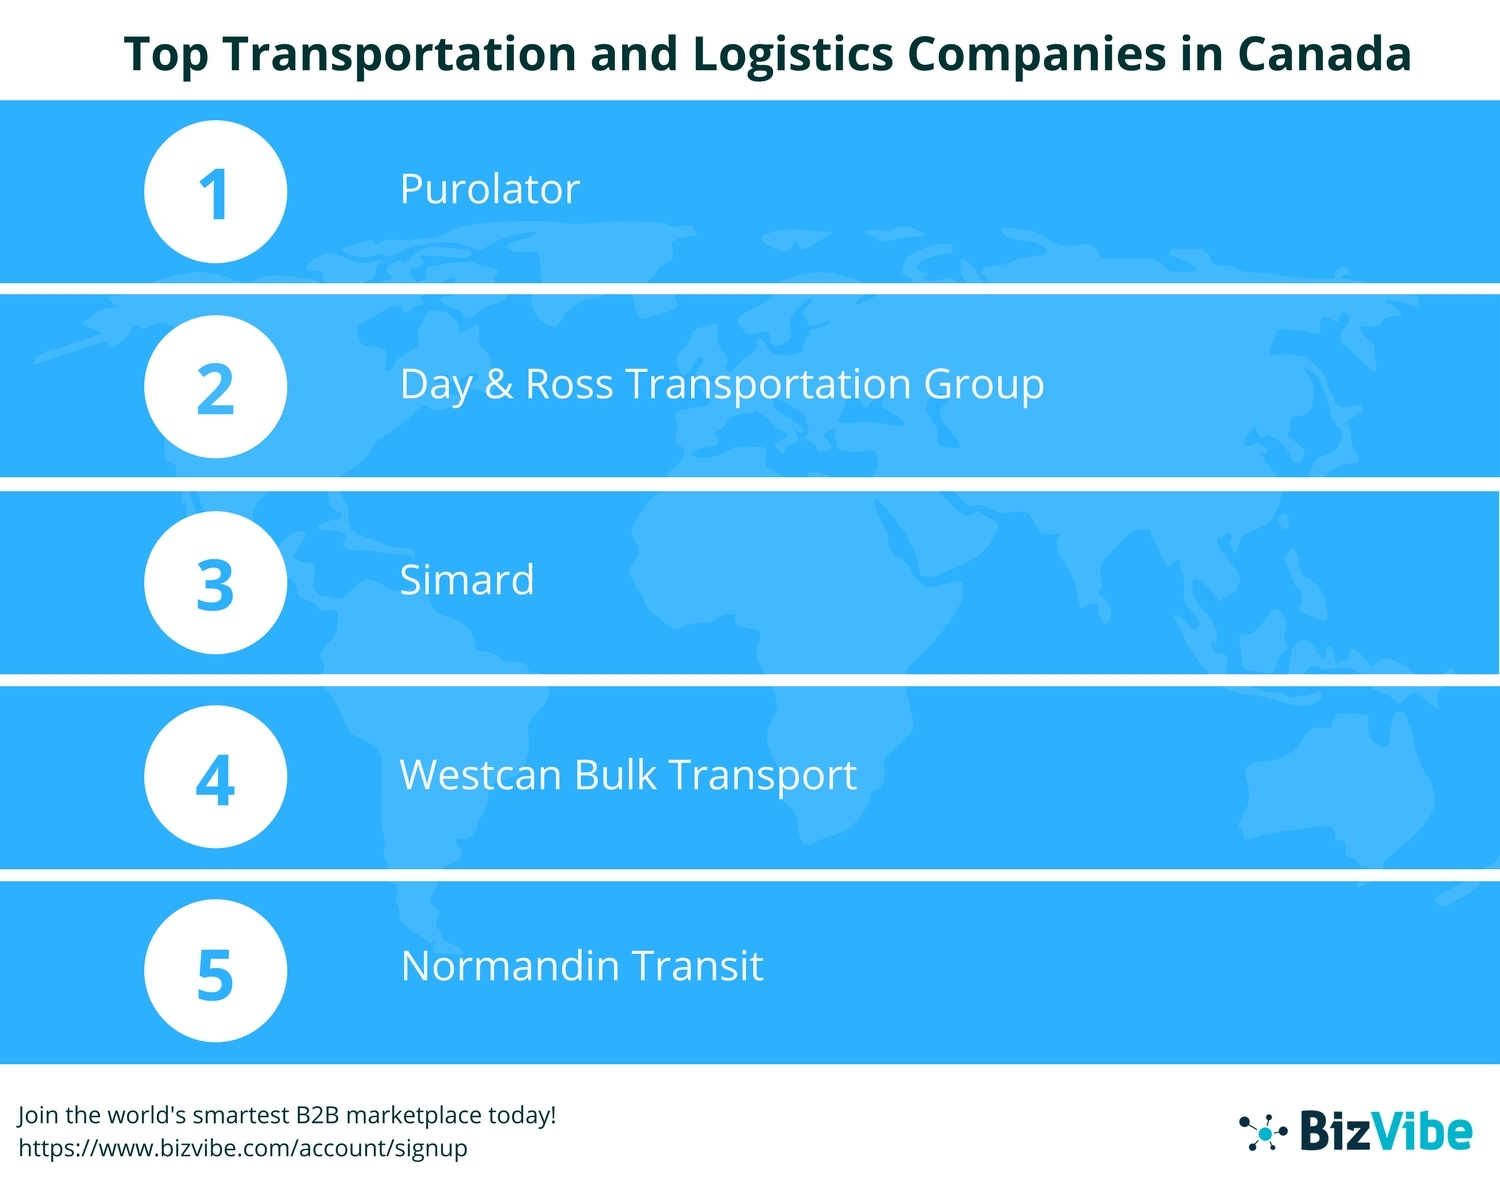 Top 10 Transportation and Logistics Companies in Canada by